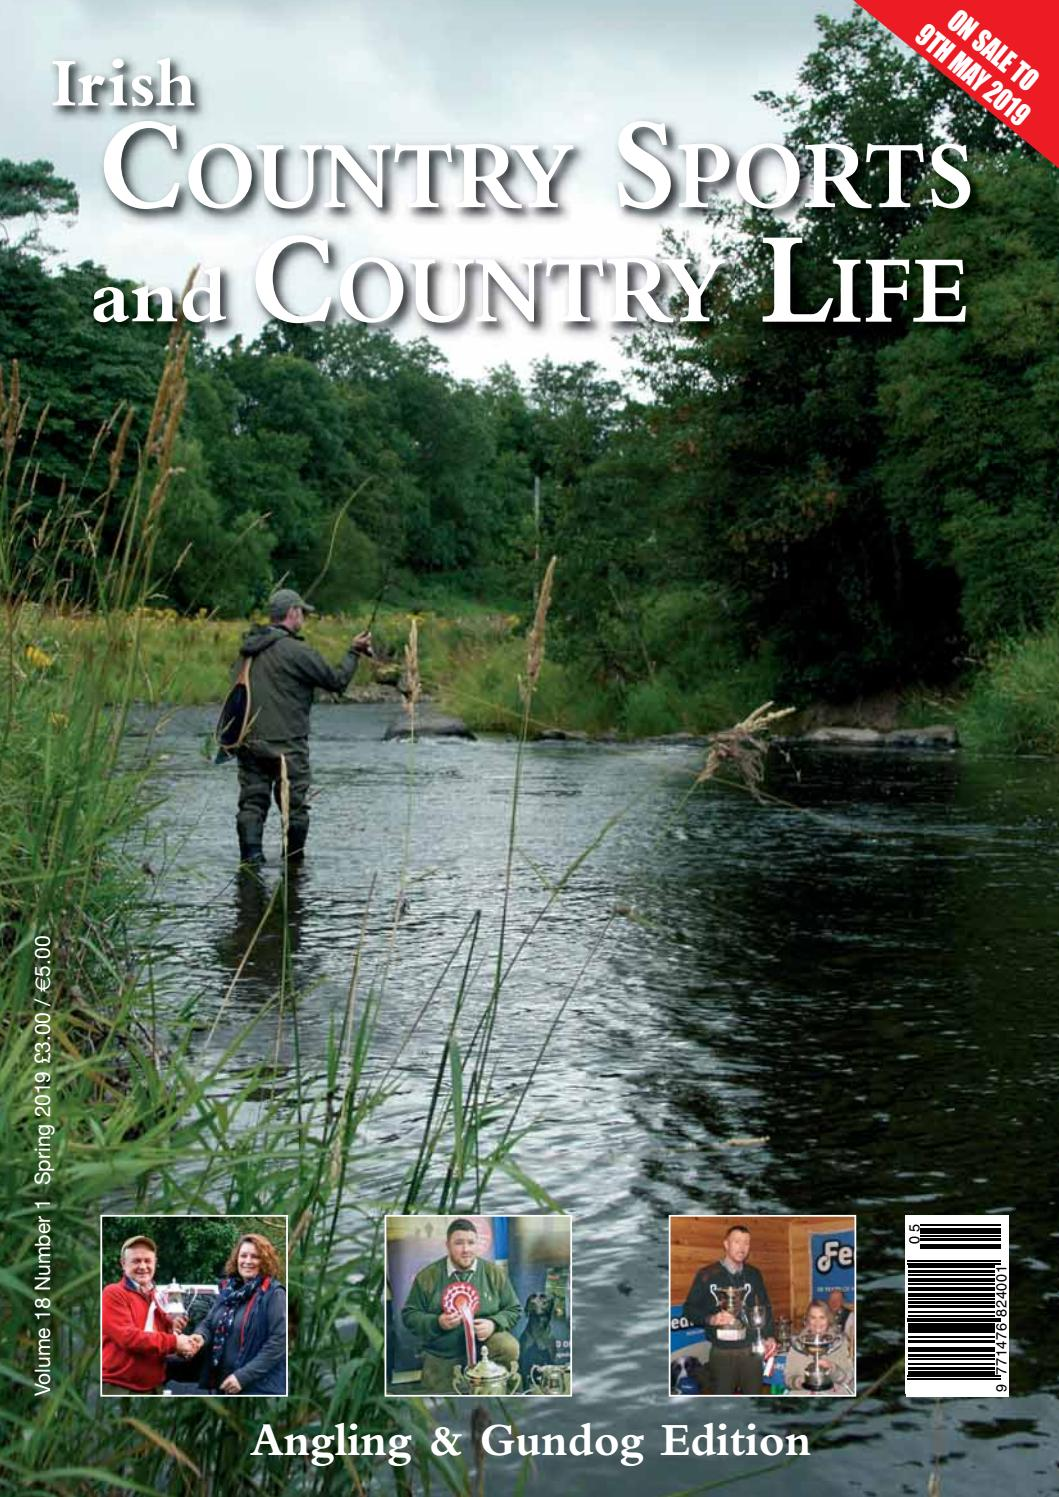 e7e424de572ef Irish Country Sports and Country Life - Spring2019 by Bluegator Creative -  issuu